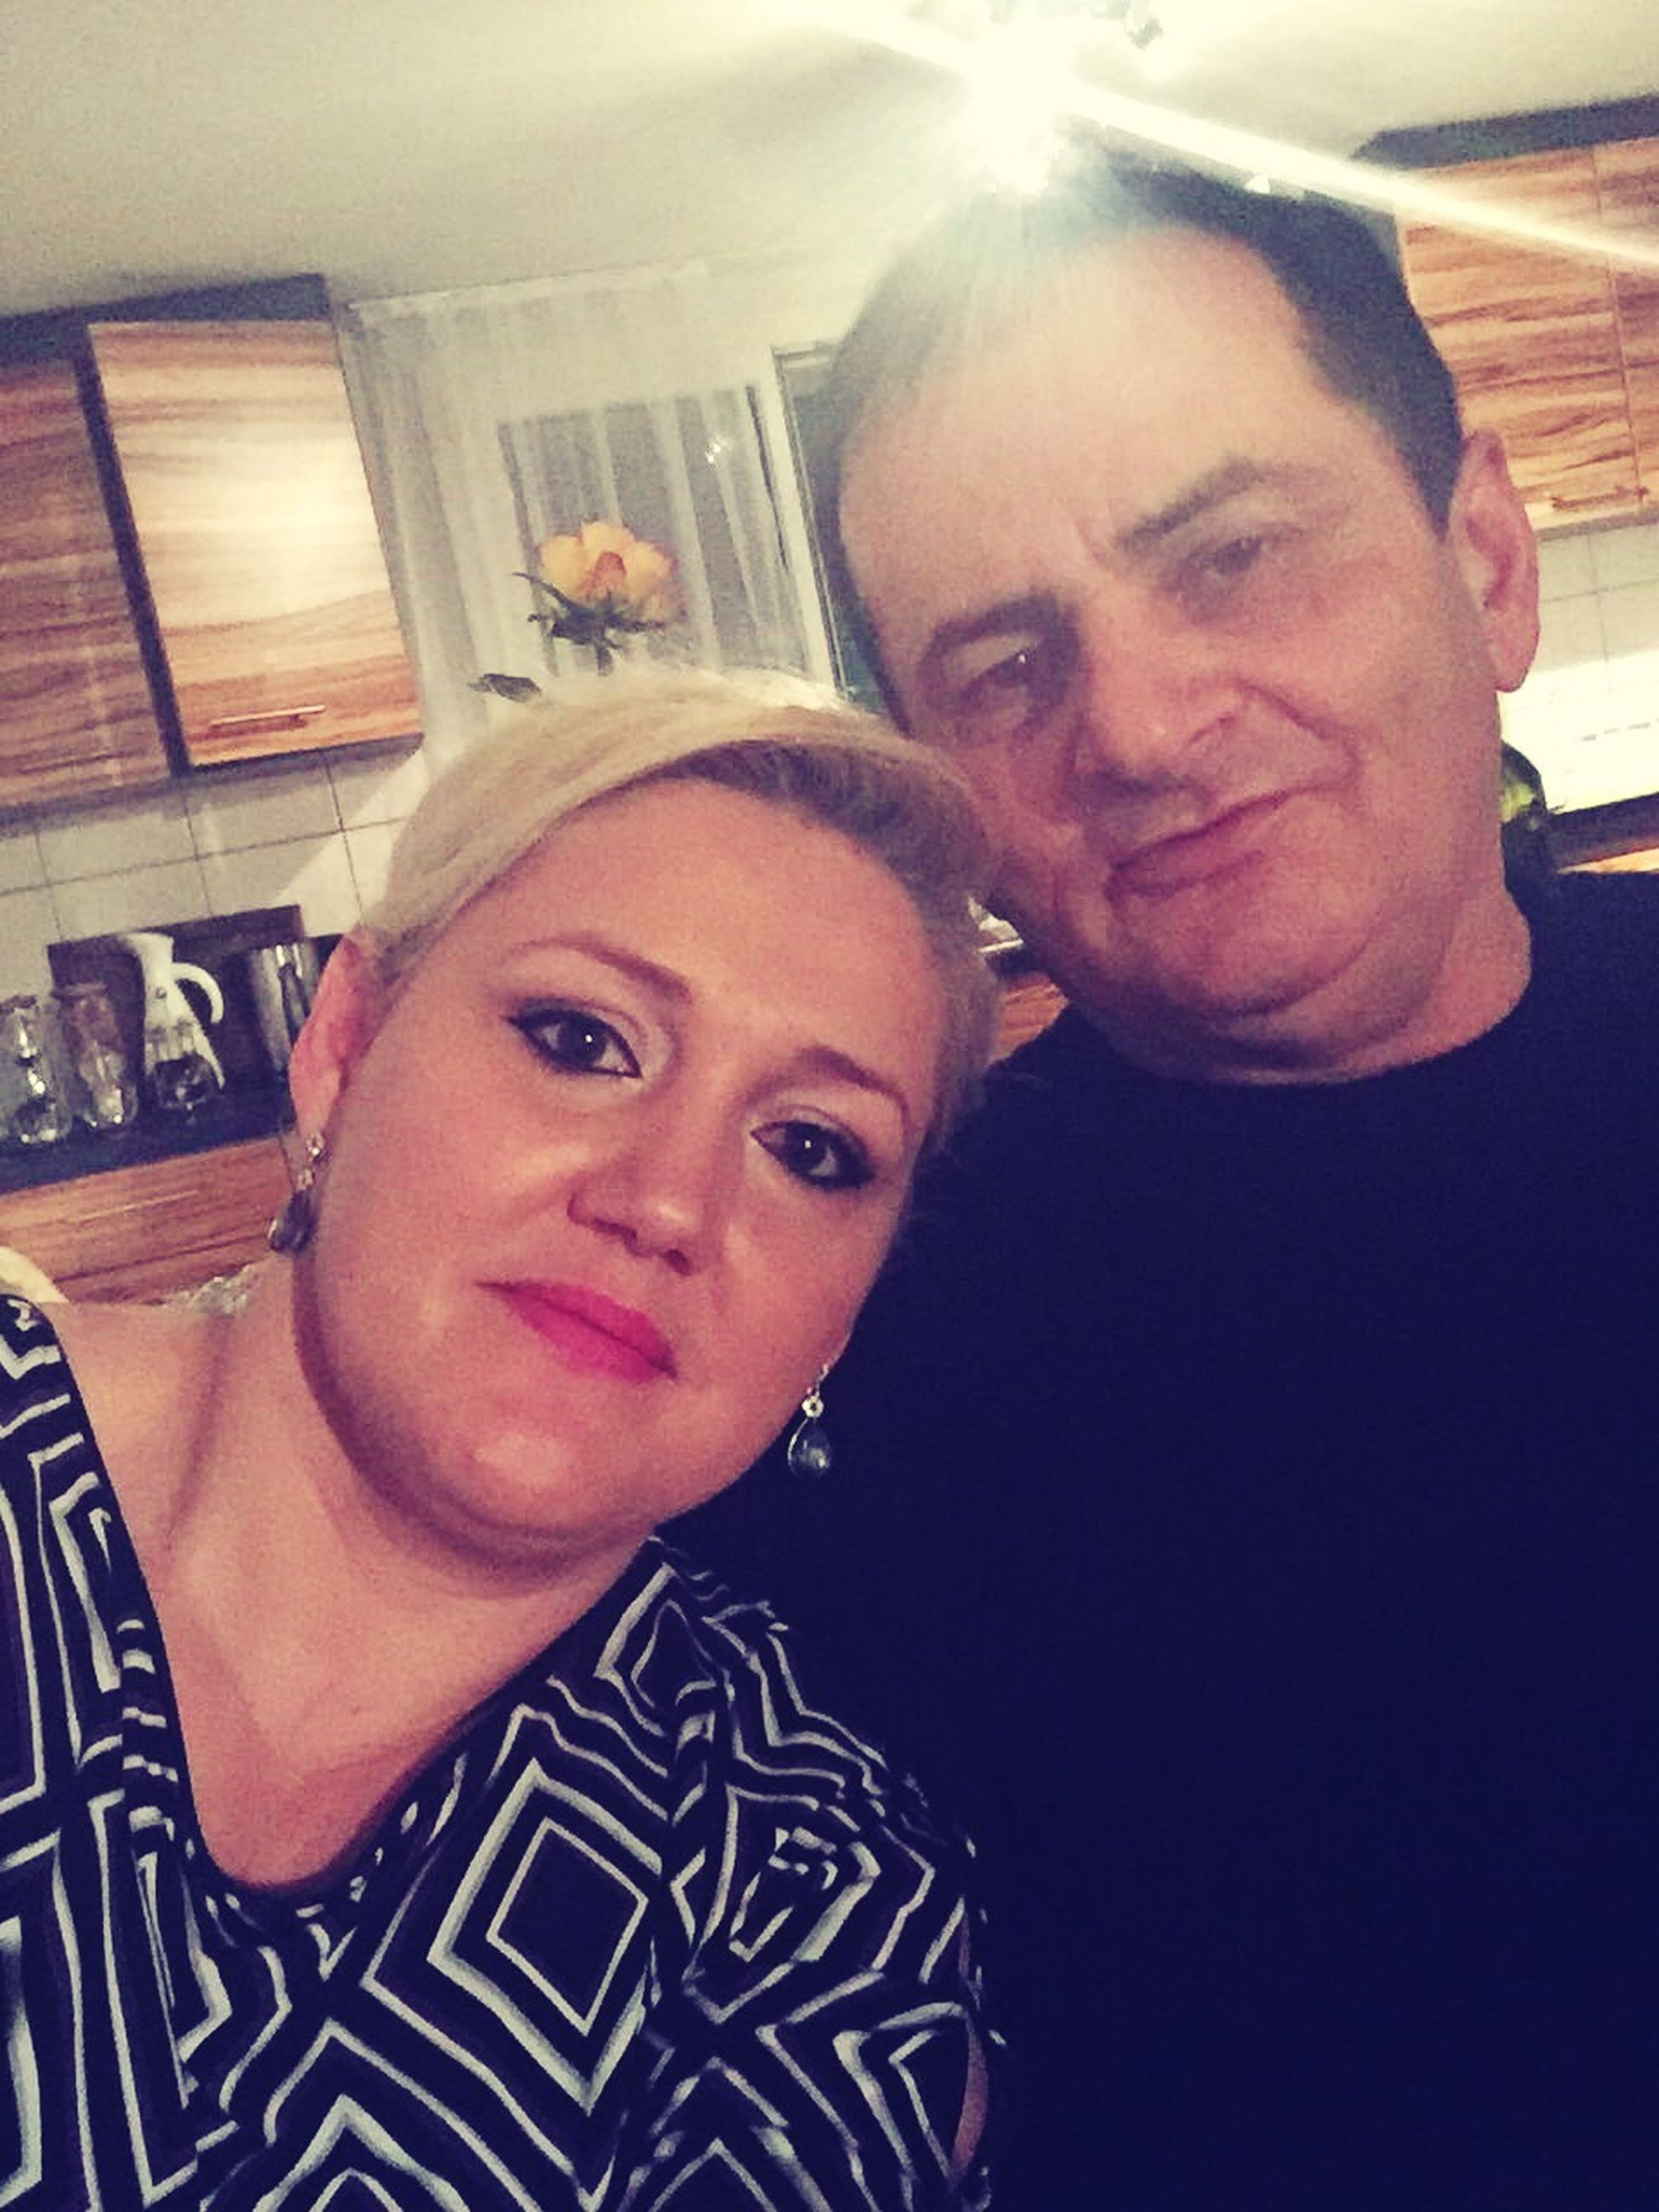 two people, looking at camera, portrait, lifestyles, togetherness, heterosexual couple, love, home interior, mature adult, real people, couple - relationship, indoors, young adult, leisure activity, bonding, young women, women, selfie, smiling, men, adults only, beautiful woman, adult, close-up, people, day